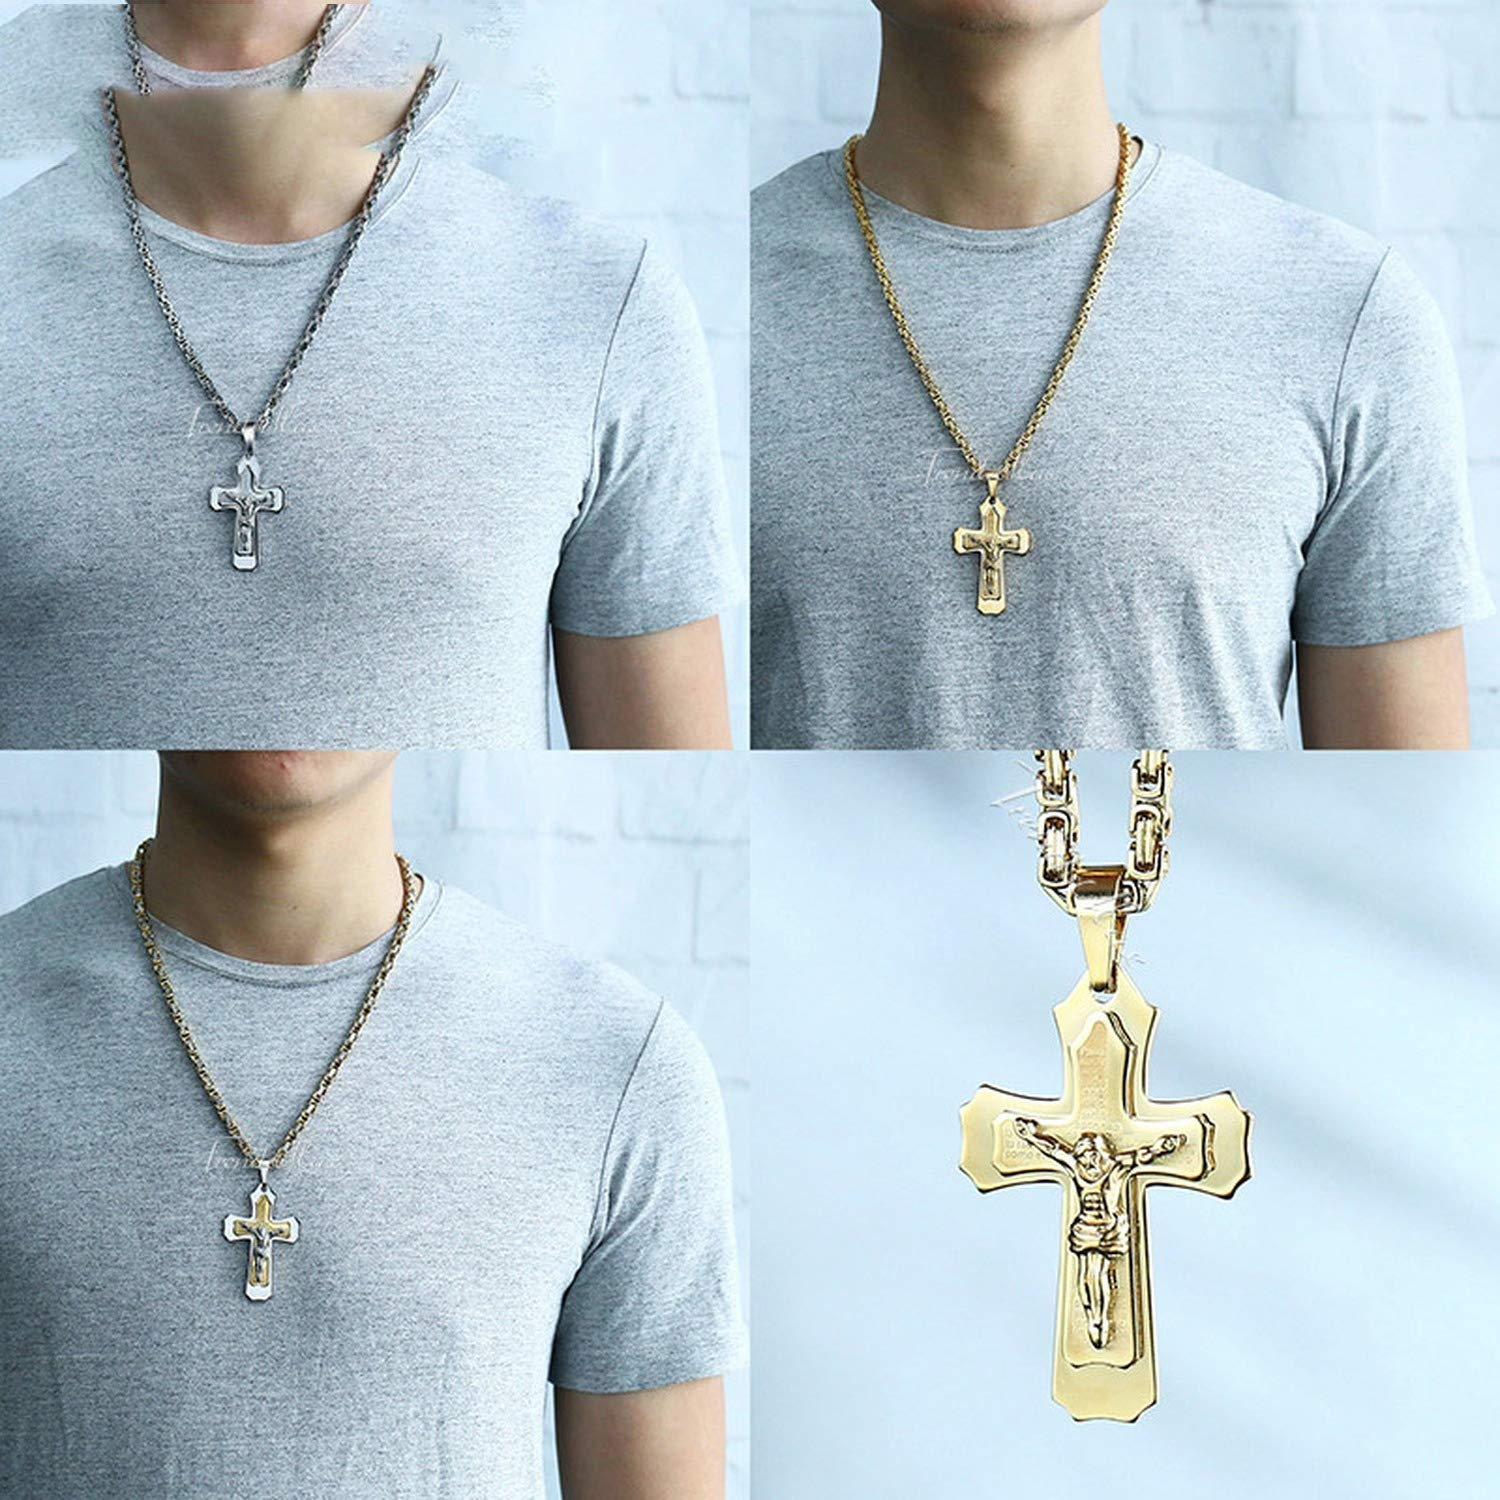 Zimzalabim-offical-store Jesus Cross Pendant Necklace for Men Gold Silver Stainless Steel Byzantine Box Chain Necklace Men Jewelry Gift